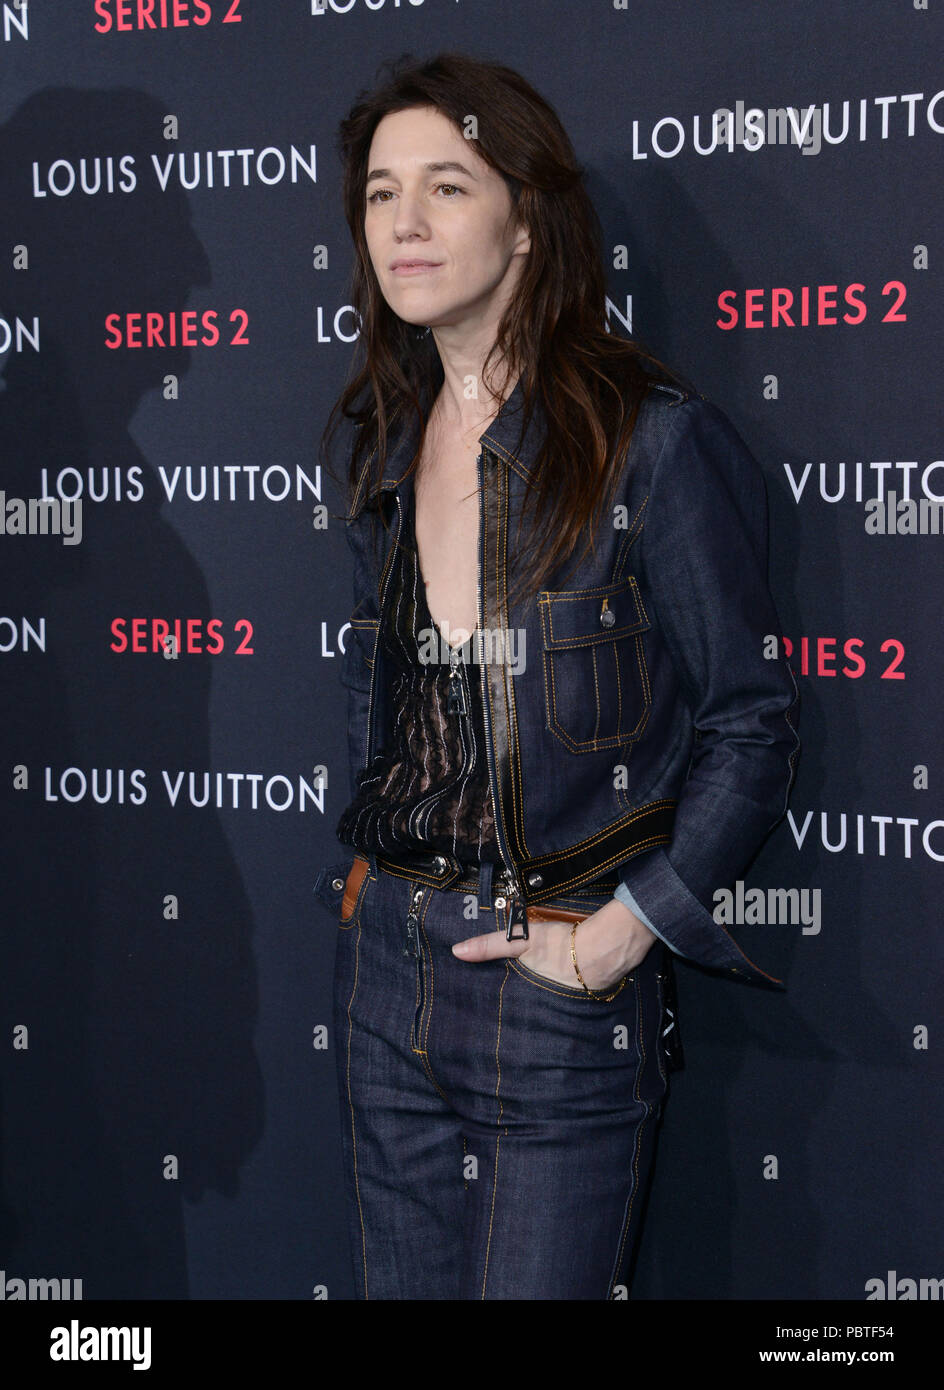 Charlotte Gainsbourg 028 at  the Louis Vuitton Series 2 exhibition  at 1135 north Highland in Los Angeles.  February 5, 2015Charlotte Gainsbourg 028 ------------- Red Carpet Event, Vertical, USA, Film Industry, Celebrities,  Photography, Bestof, Arts Culture and Entertainment, Topix Celebrities fashion /  Vertical, Best of, Event in Hollywood Life - California,  Red Carpet and backstage, USA, Film Industry, Celebrities,  movie celebrities, TV celebrities, Music celebrities, Photography, Bestof, Arts Culture and Entertainment,  Topix, Three Quarters, vertical, one person,, from the year , 2015, - Stock Image